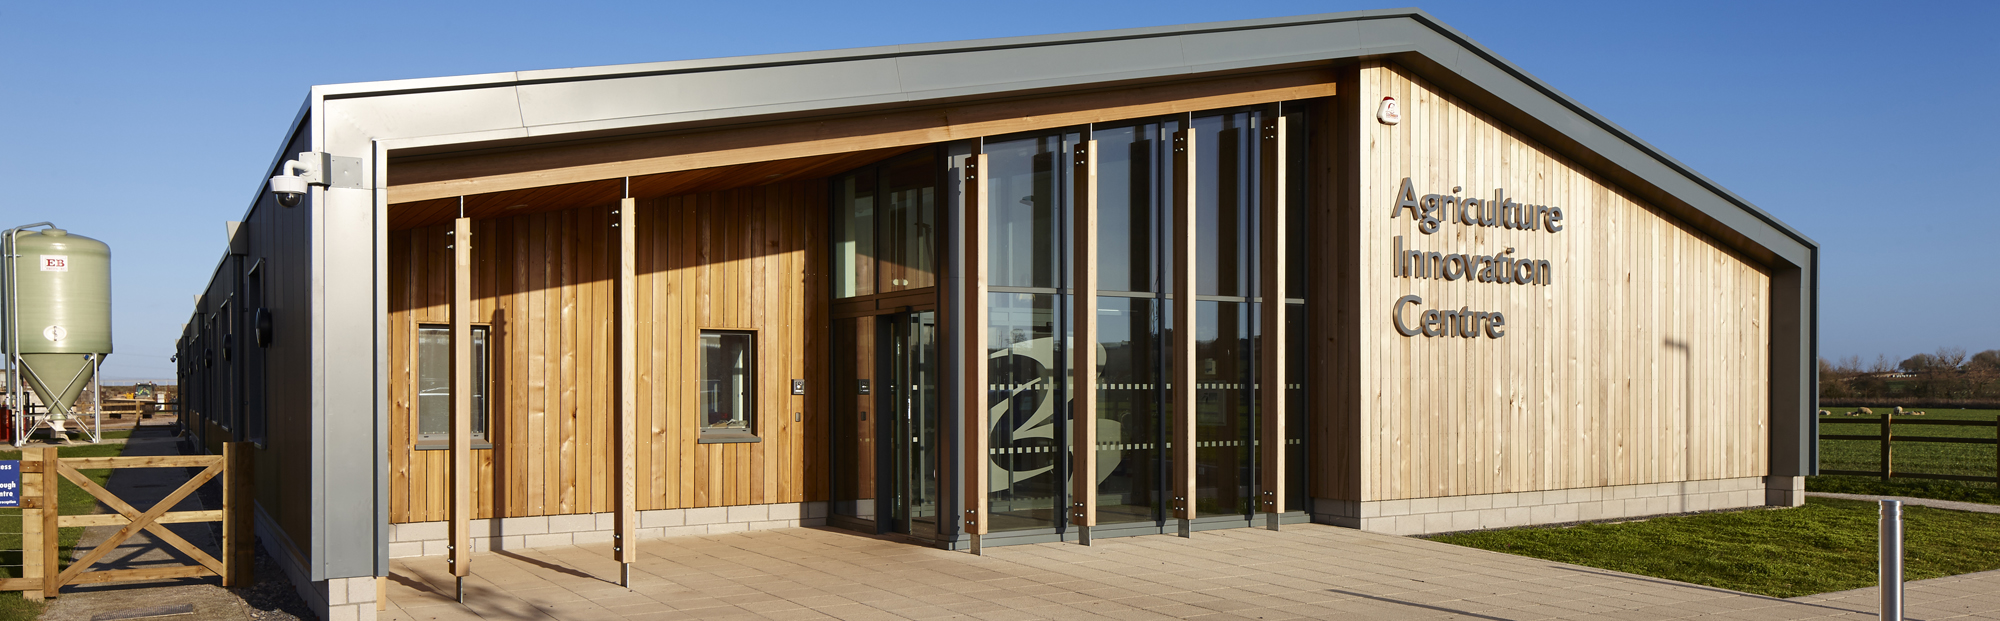 Bridgwater College Agriculture Innovation Centre